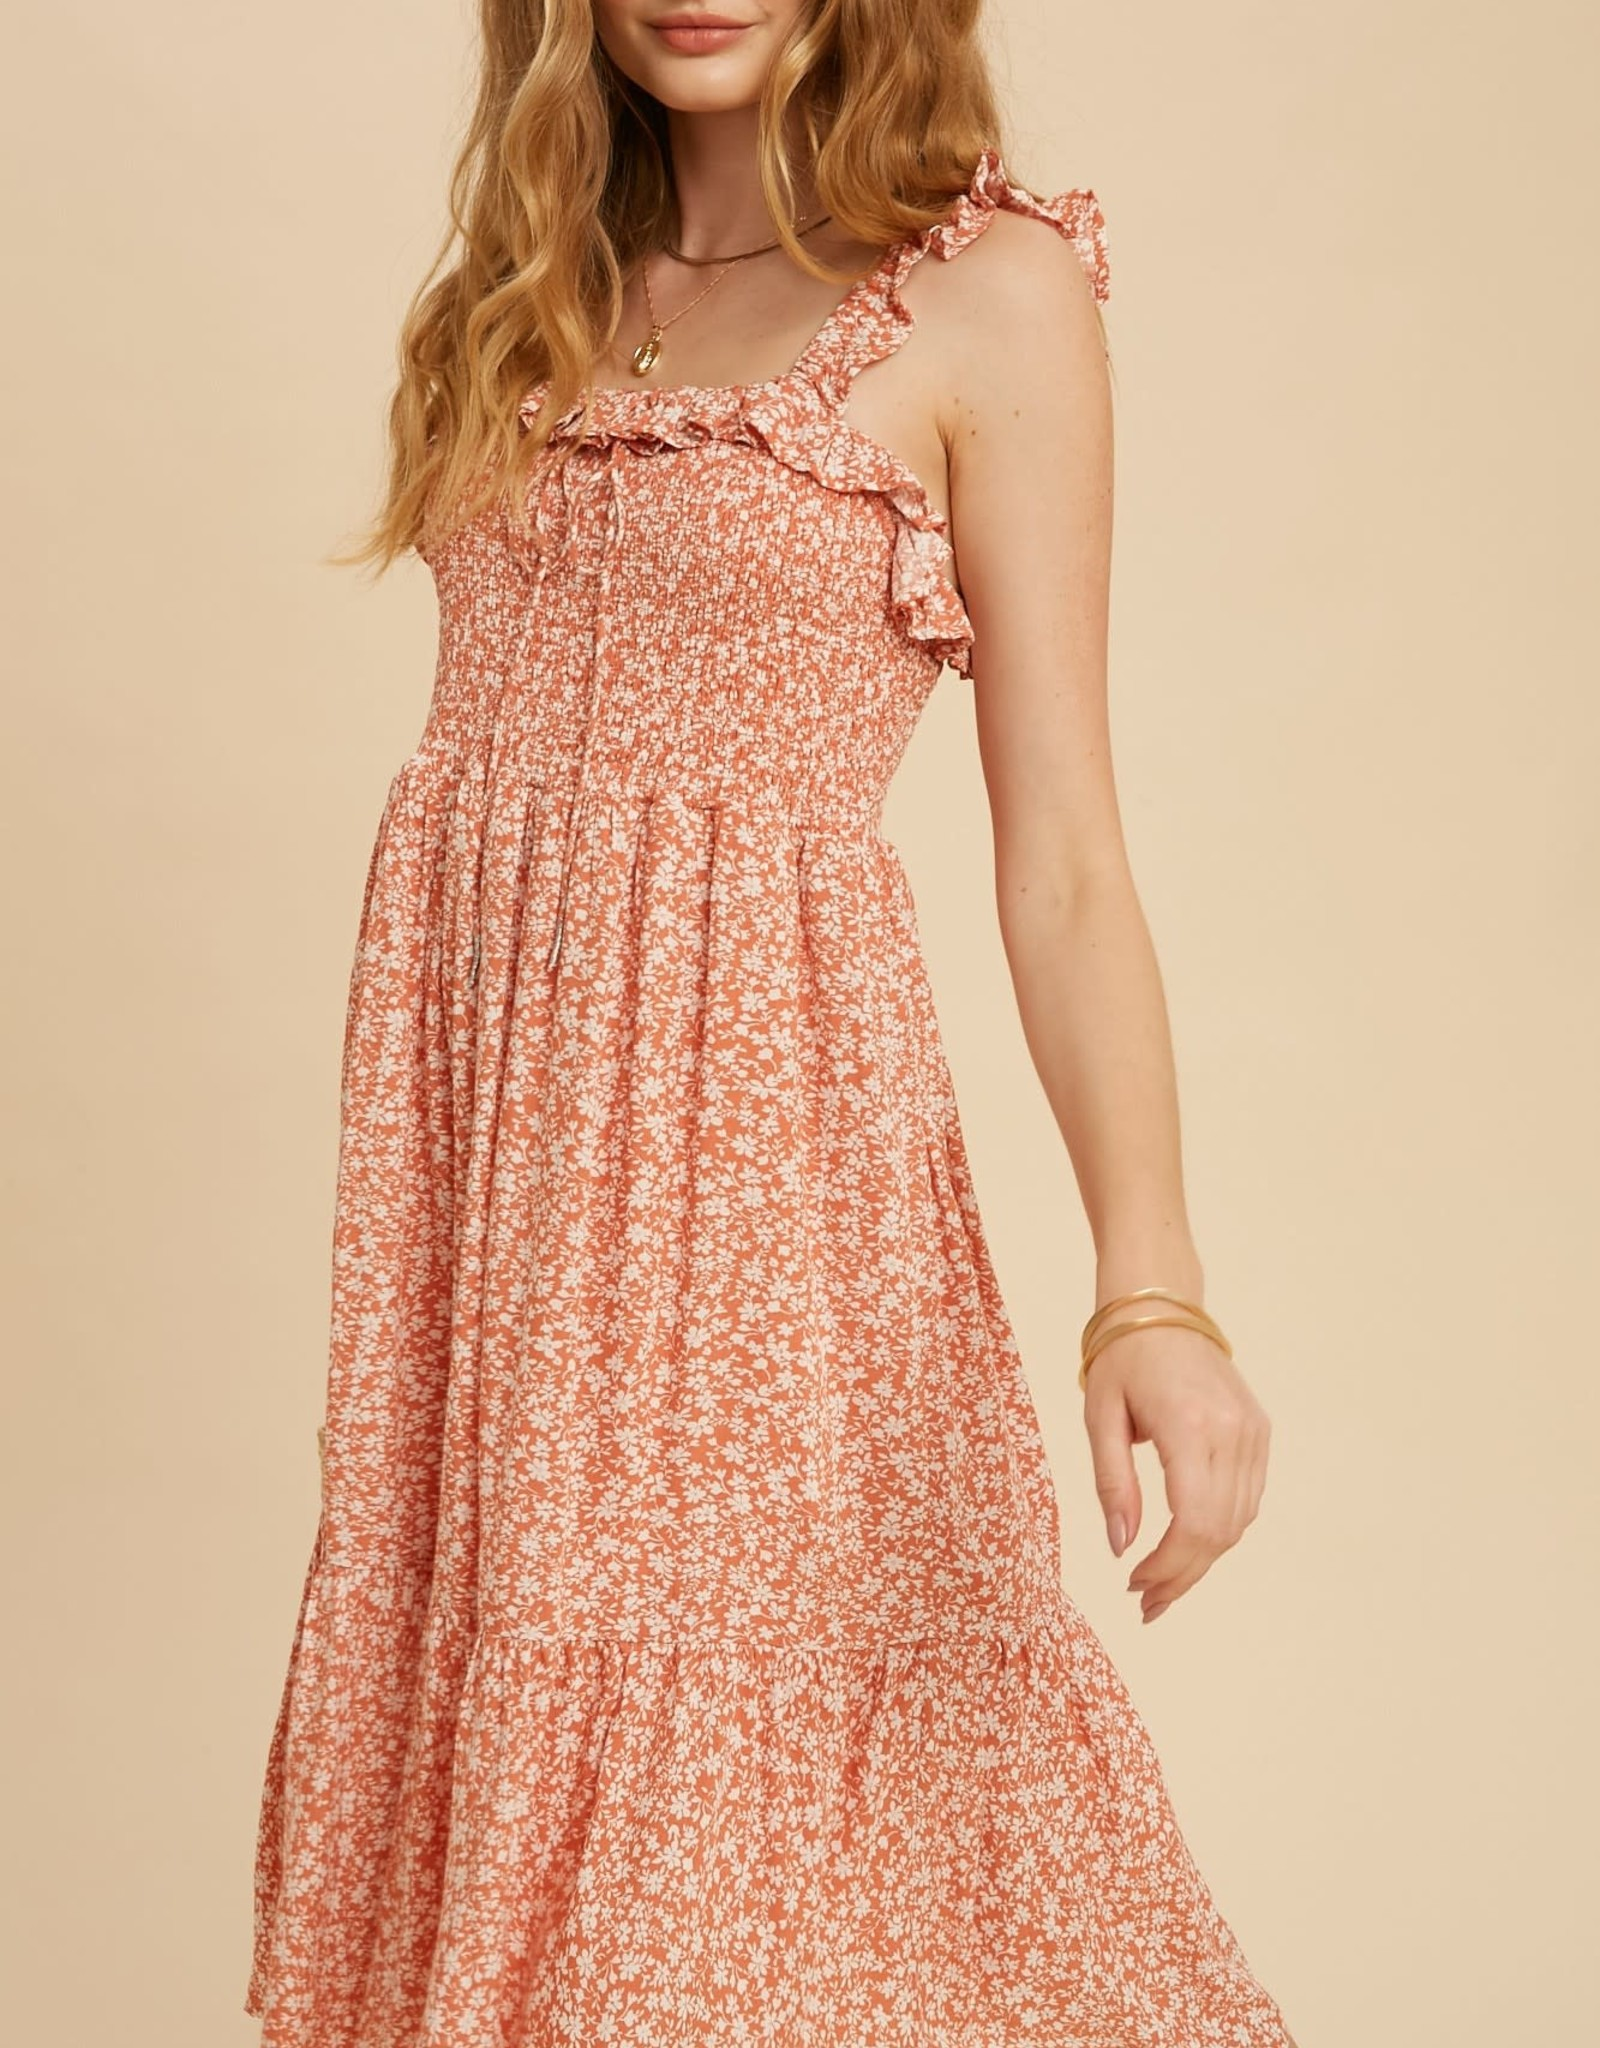 Miss Bliss Smocked Ruffle Strap Ditzy Floral Dress- Coral